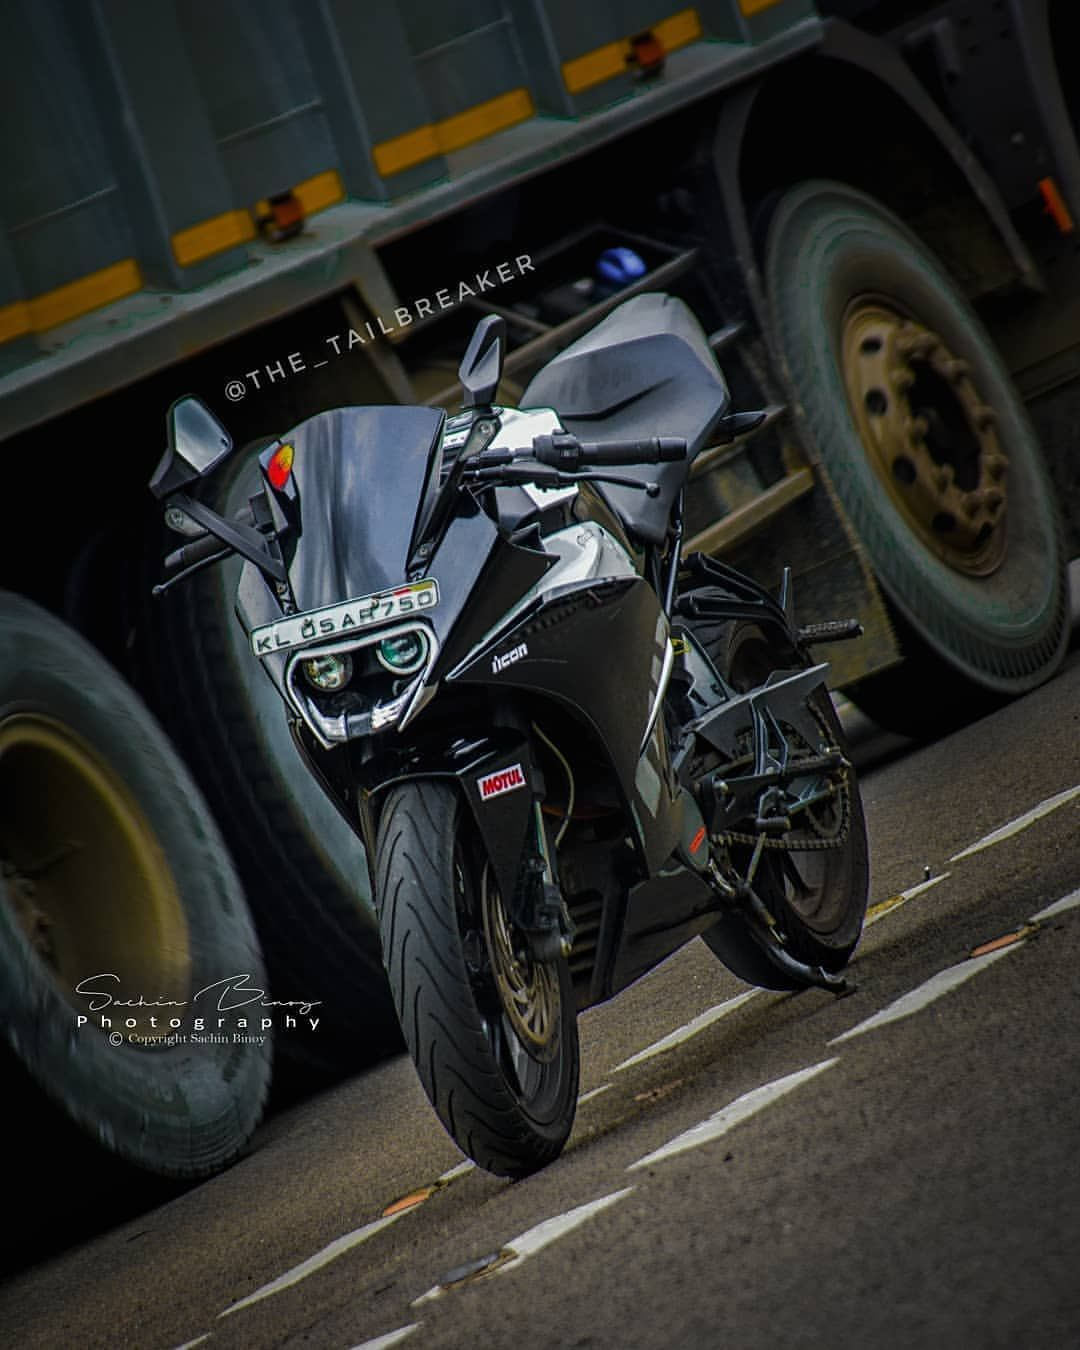 Ktm Rc200 Modified Make Sure To Follow Ktmindia Official Readytorace Ktmboys Ktmgirl Kt Ktm Background Images For Editing Photoshop Digital Background Download ktm rc modified wallpaper